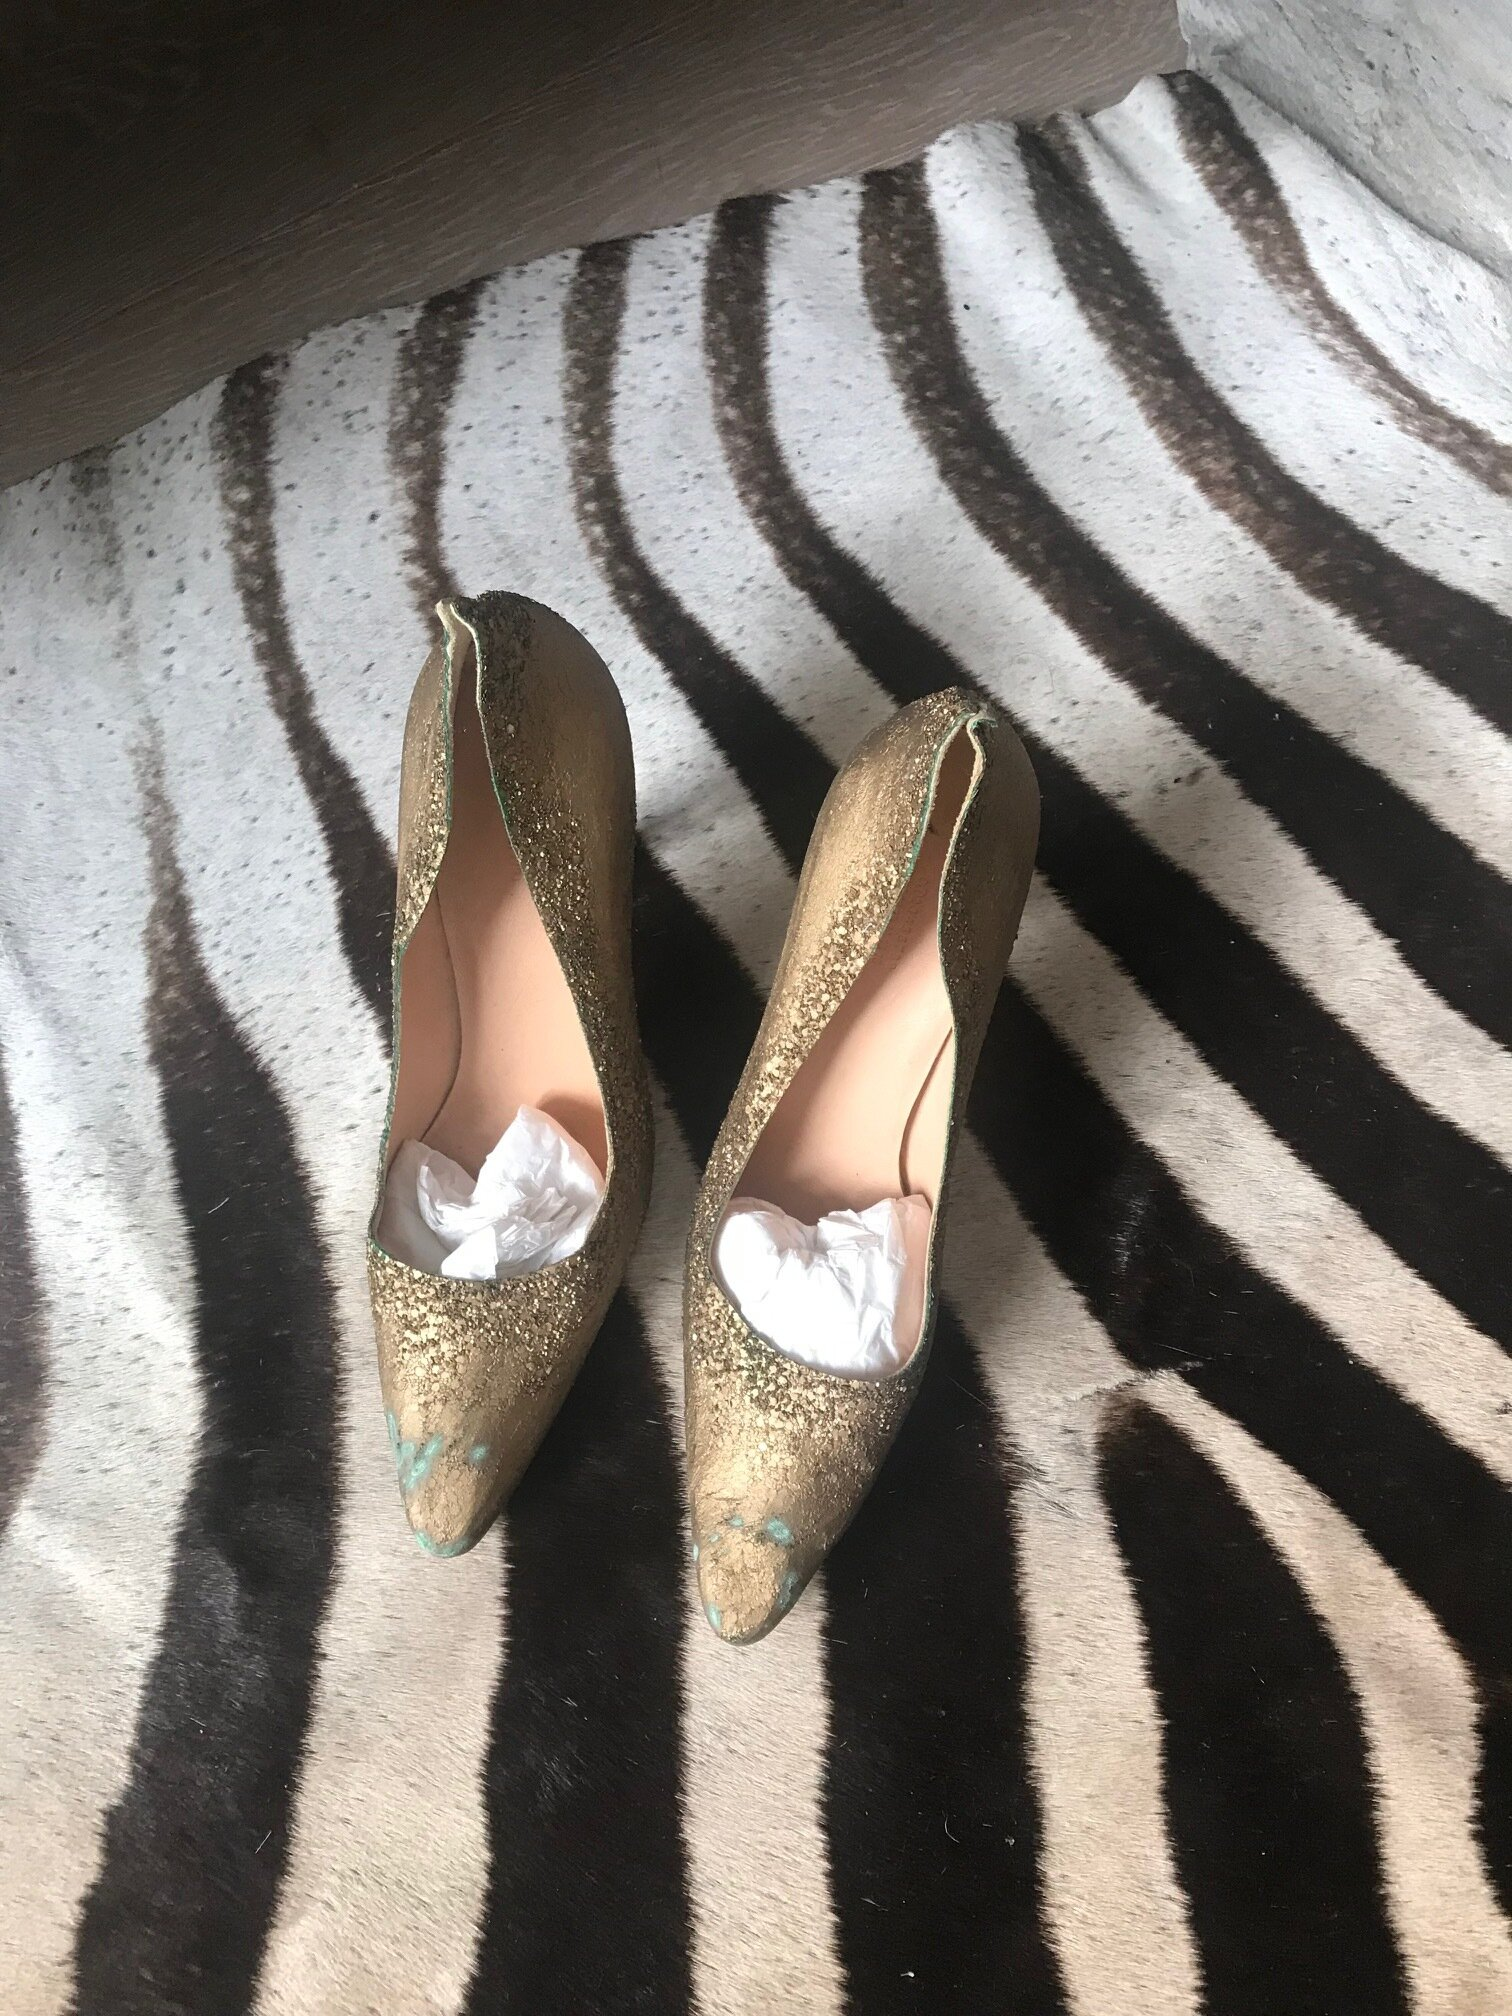 MMM GOLD AFTERPARTY PUMPS_LESLEY MACLEAN.jpg